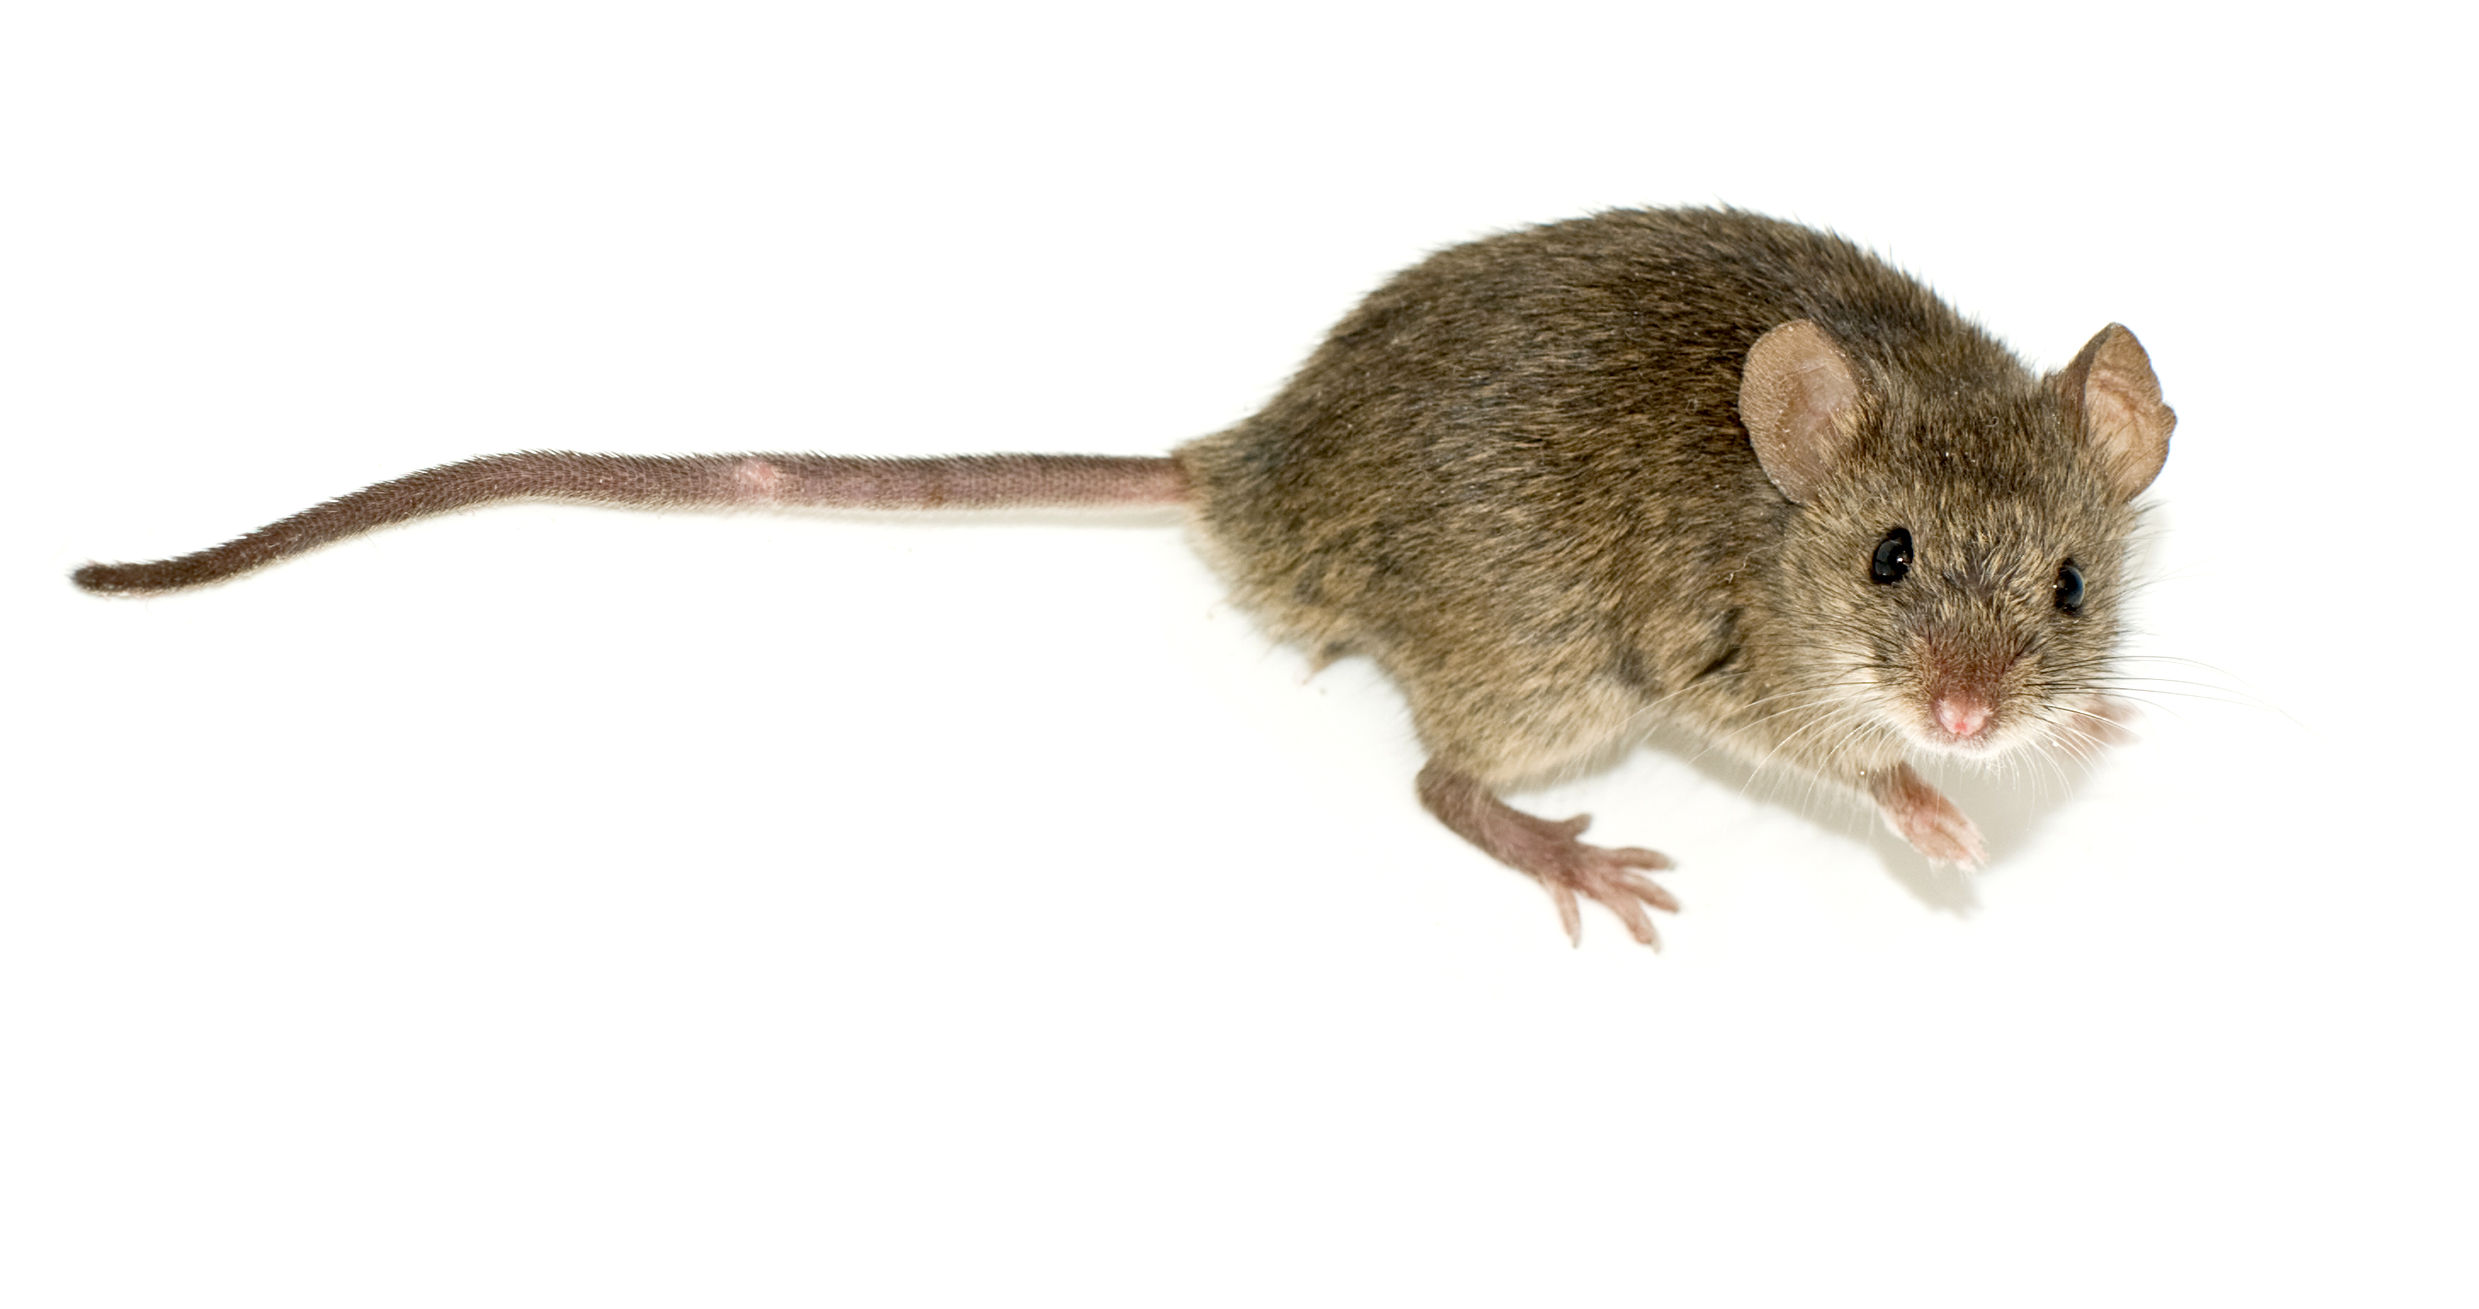 Adult size of a deer mouse agree, the